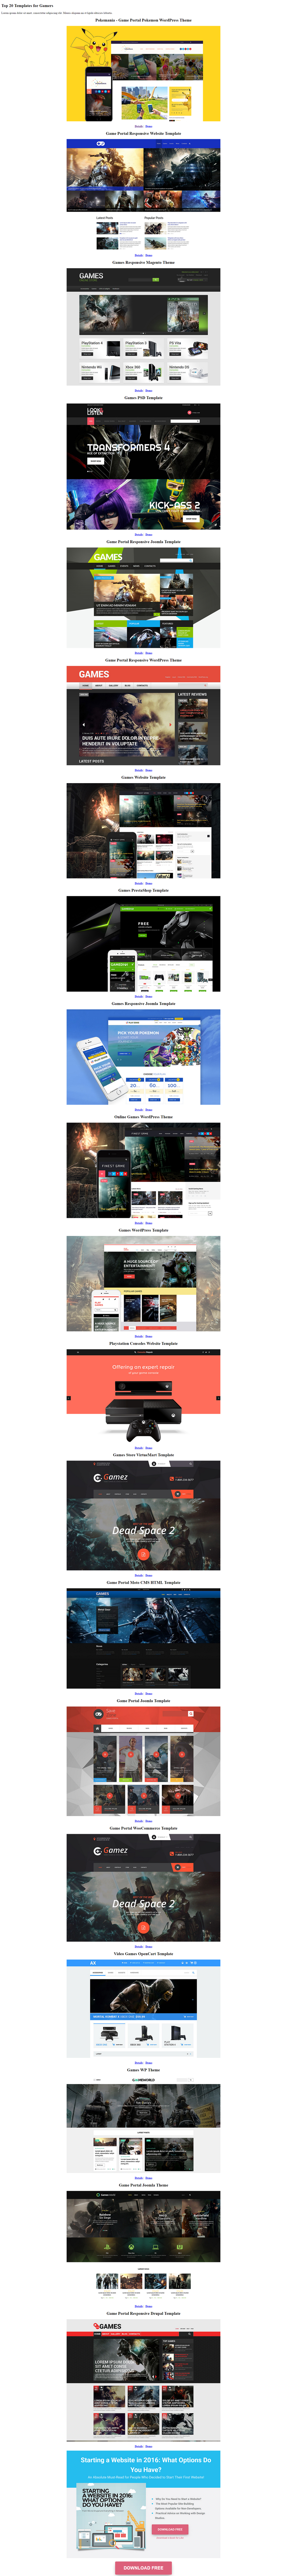 Top-20-Templates-for-Gamers-